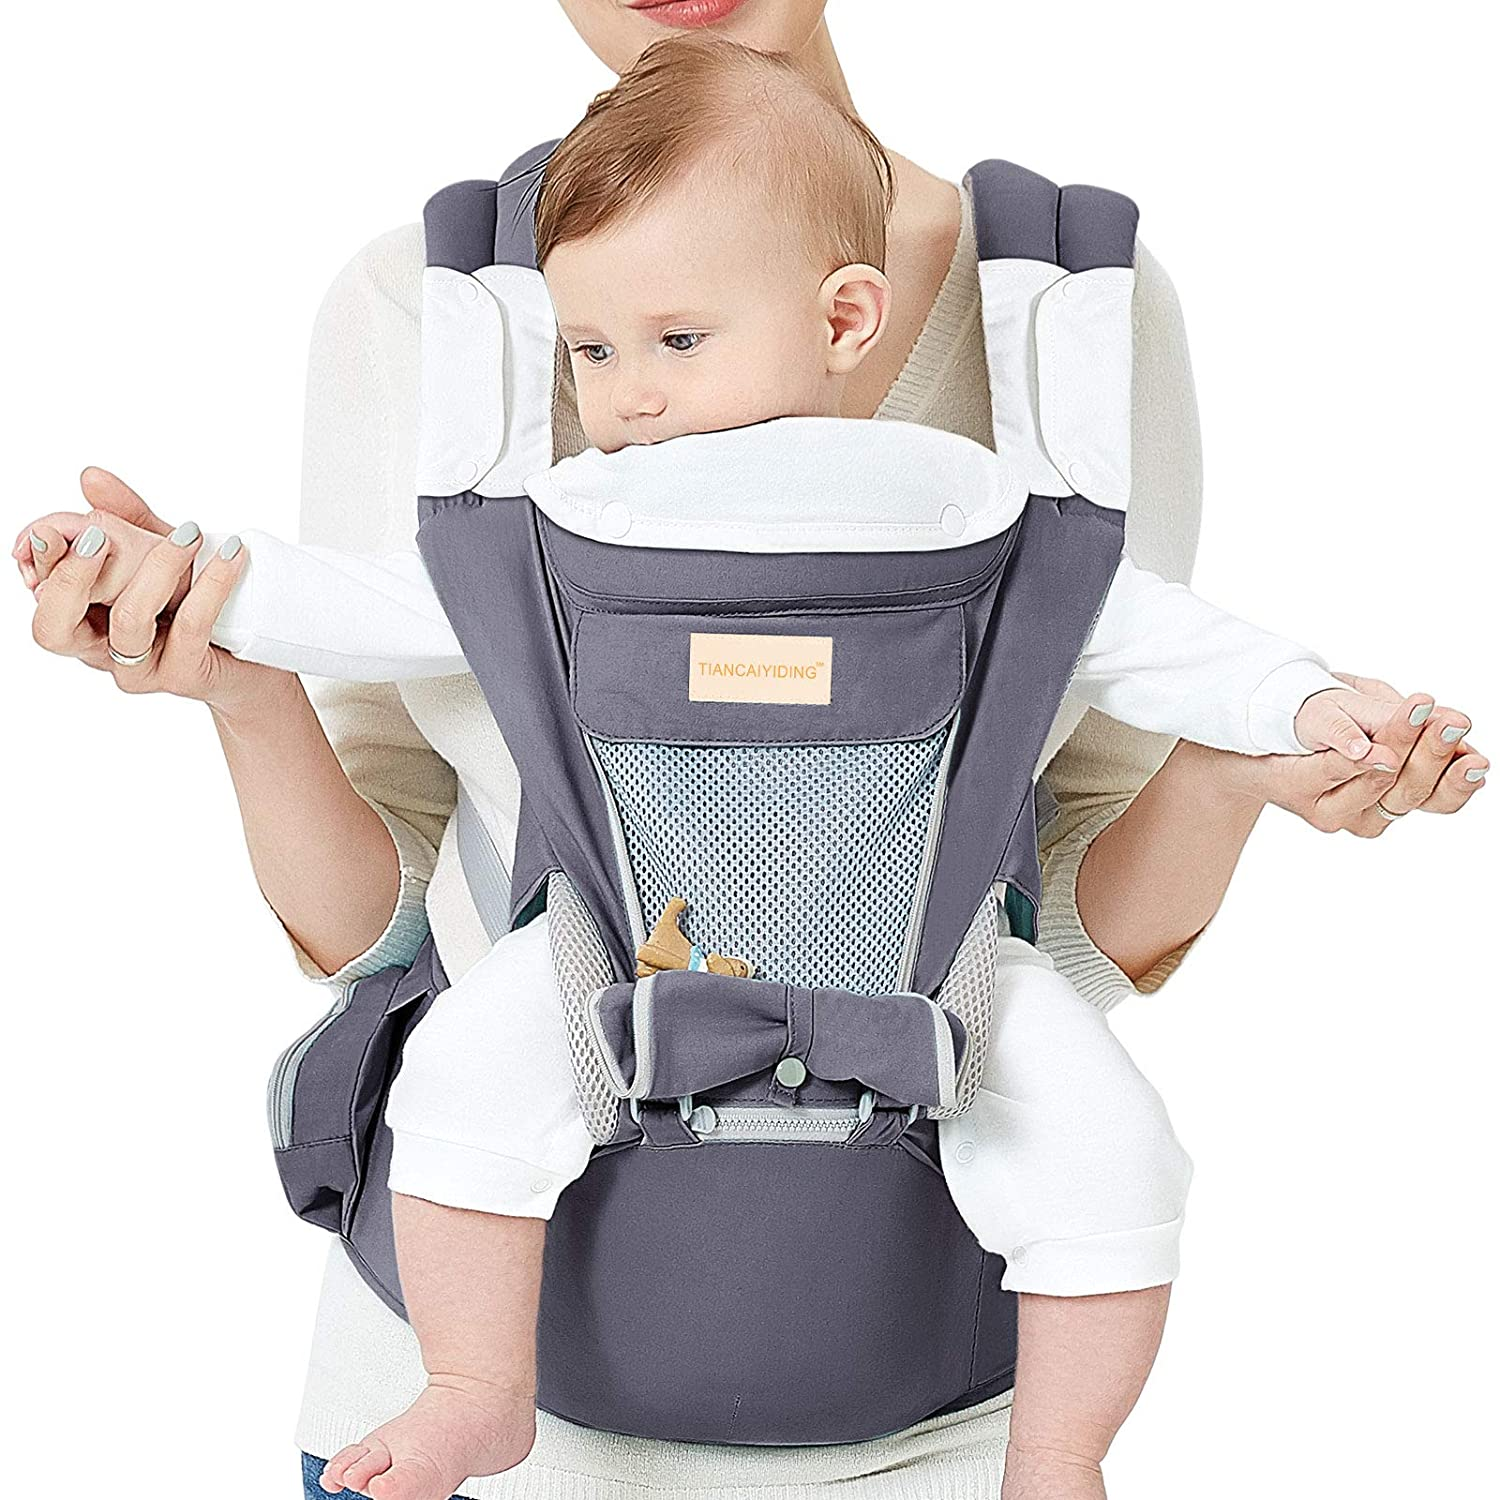 Baby Wrap Carrier with Hip Seat, Windproof Cap, Bite Towel as Well as 6 and 1 Convertible Backpack, Cotton Sling for Infants, Babies and Toddlers - Dark Grey